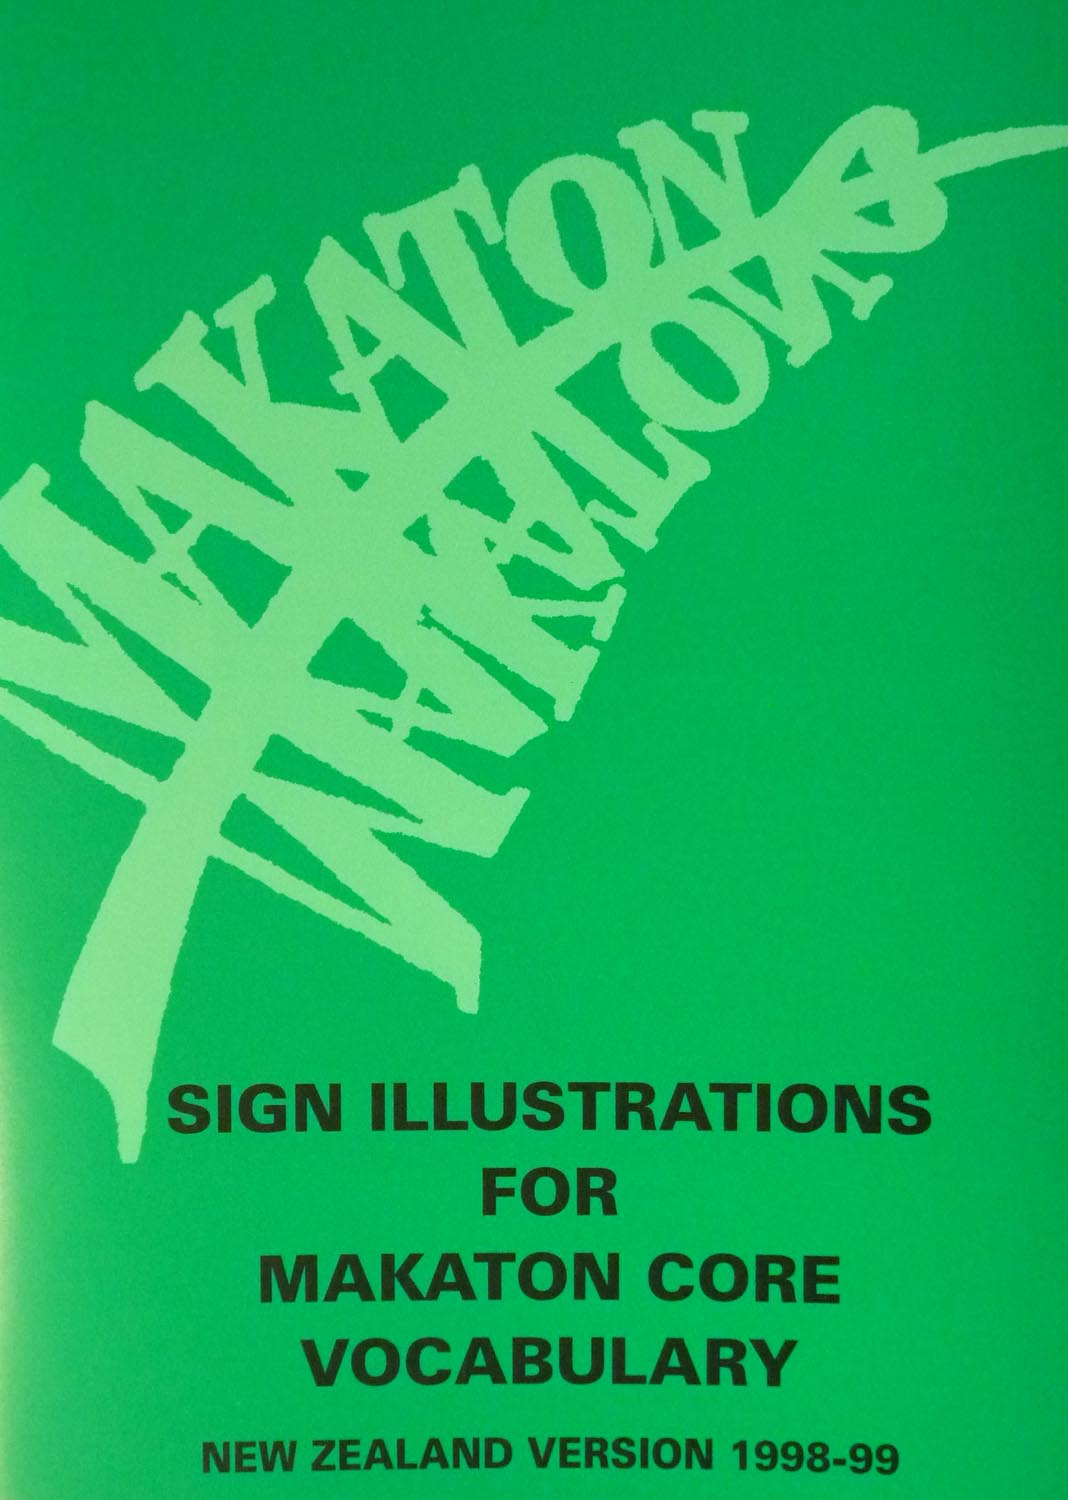 Makaton Sign Illustration for Makaton Core Vocabulary – NZ Version 1998-99 Image